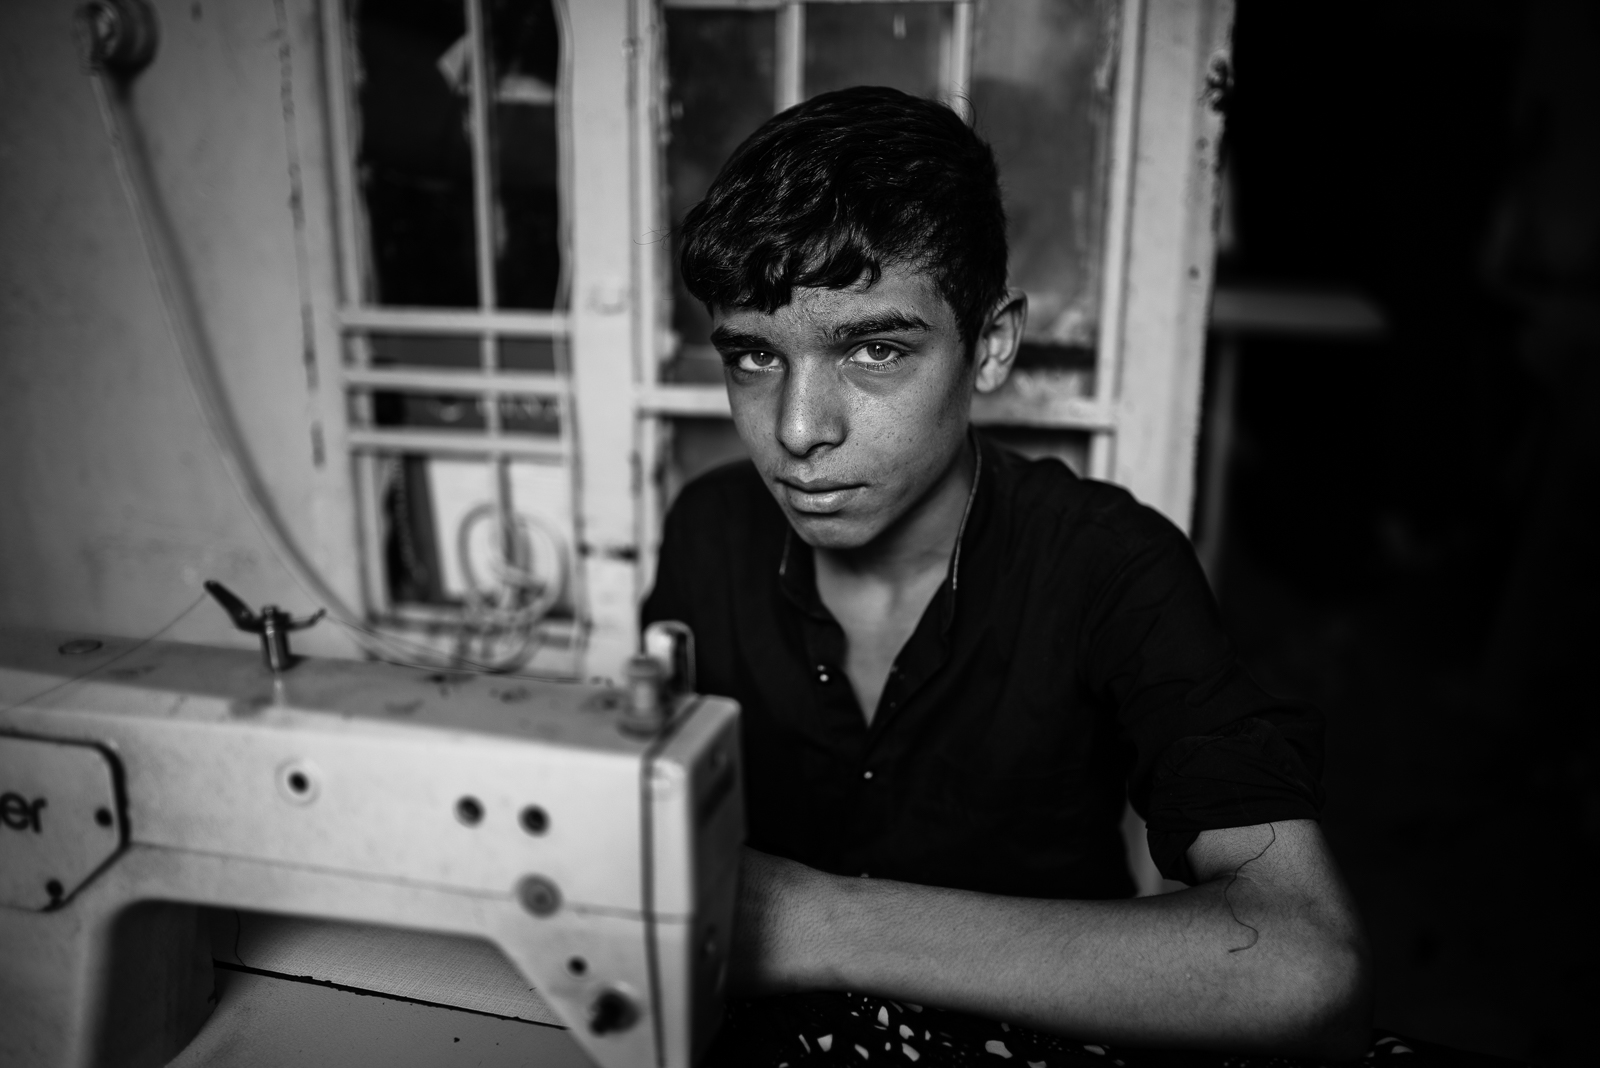 A boy at work in Sanliurfa